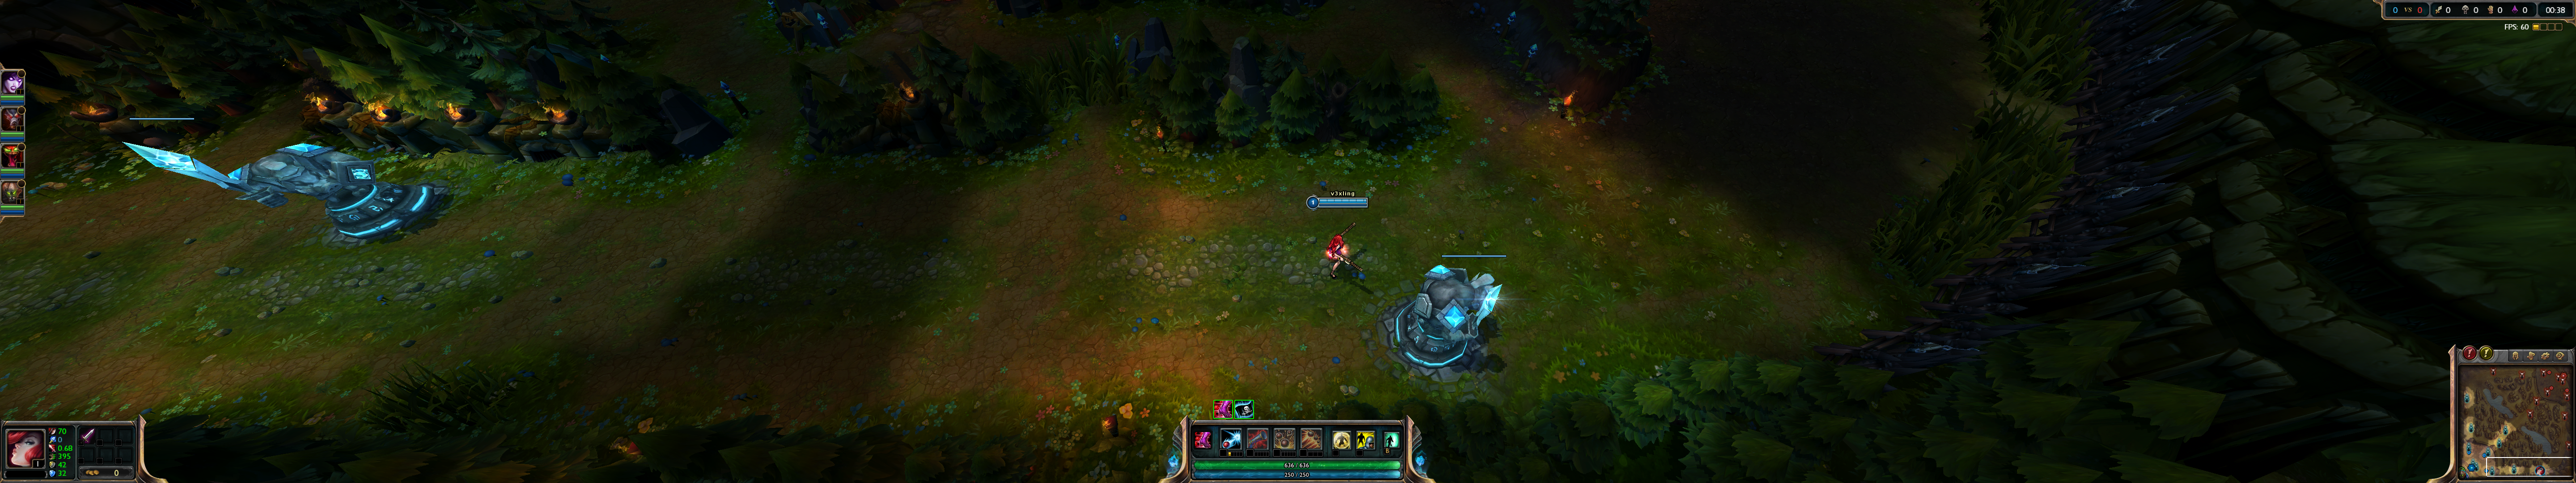 Screenshot from Leauge of Legends on 3 screens before the fix